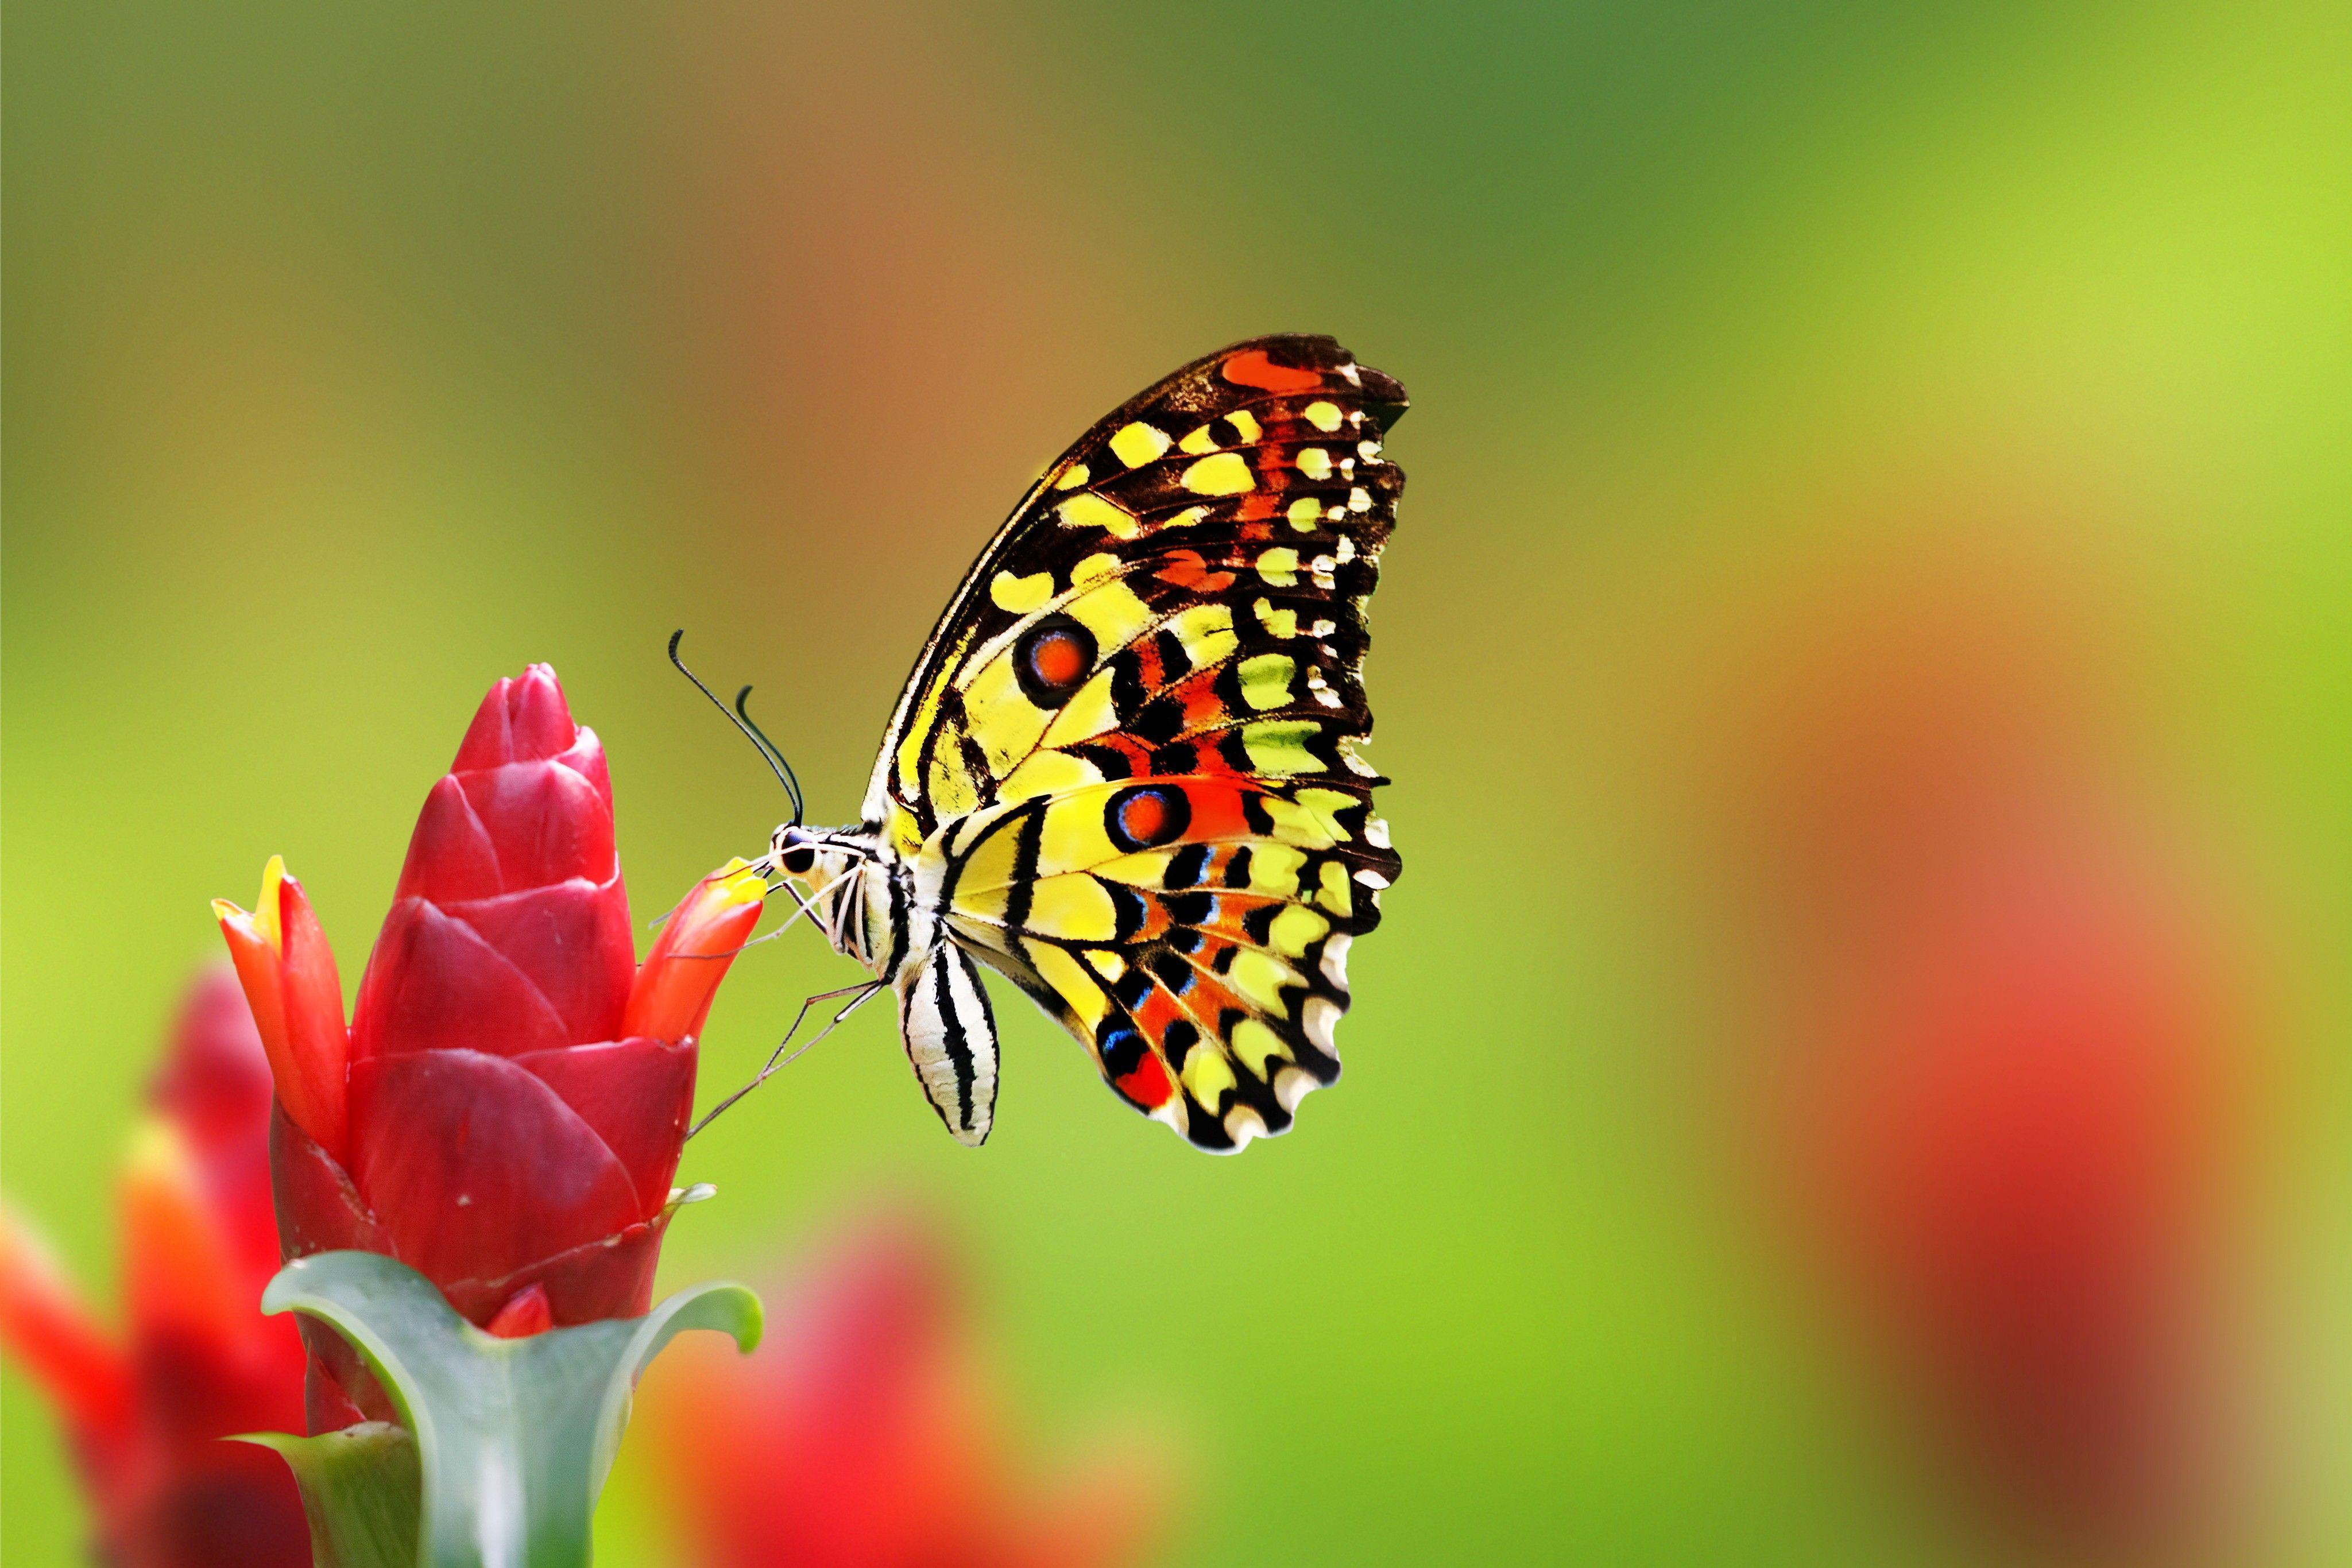 Butterfly Wallpapers | Free Download Cute Colorful HD Desktop Images